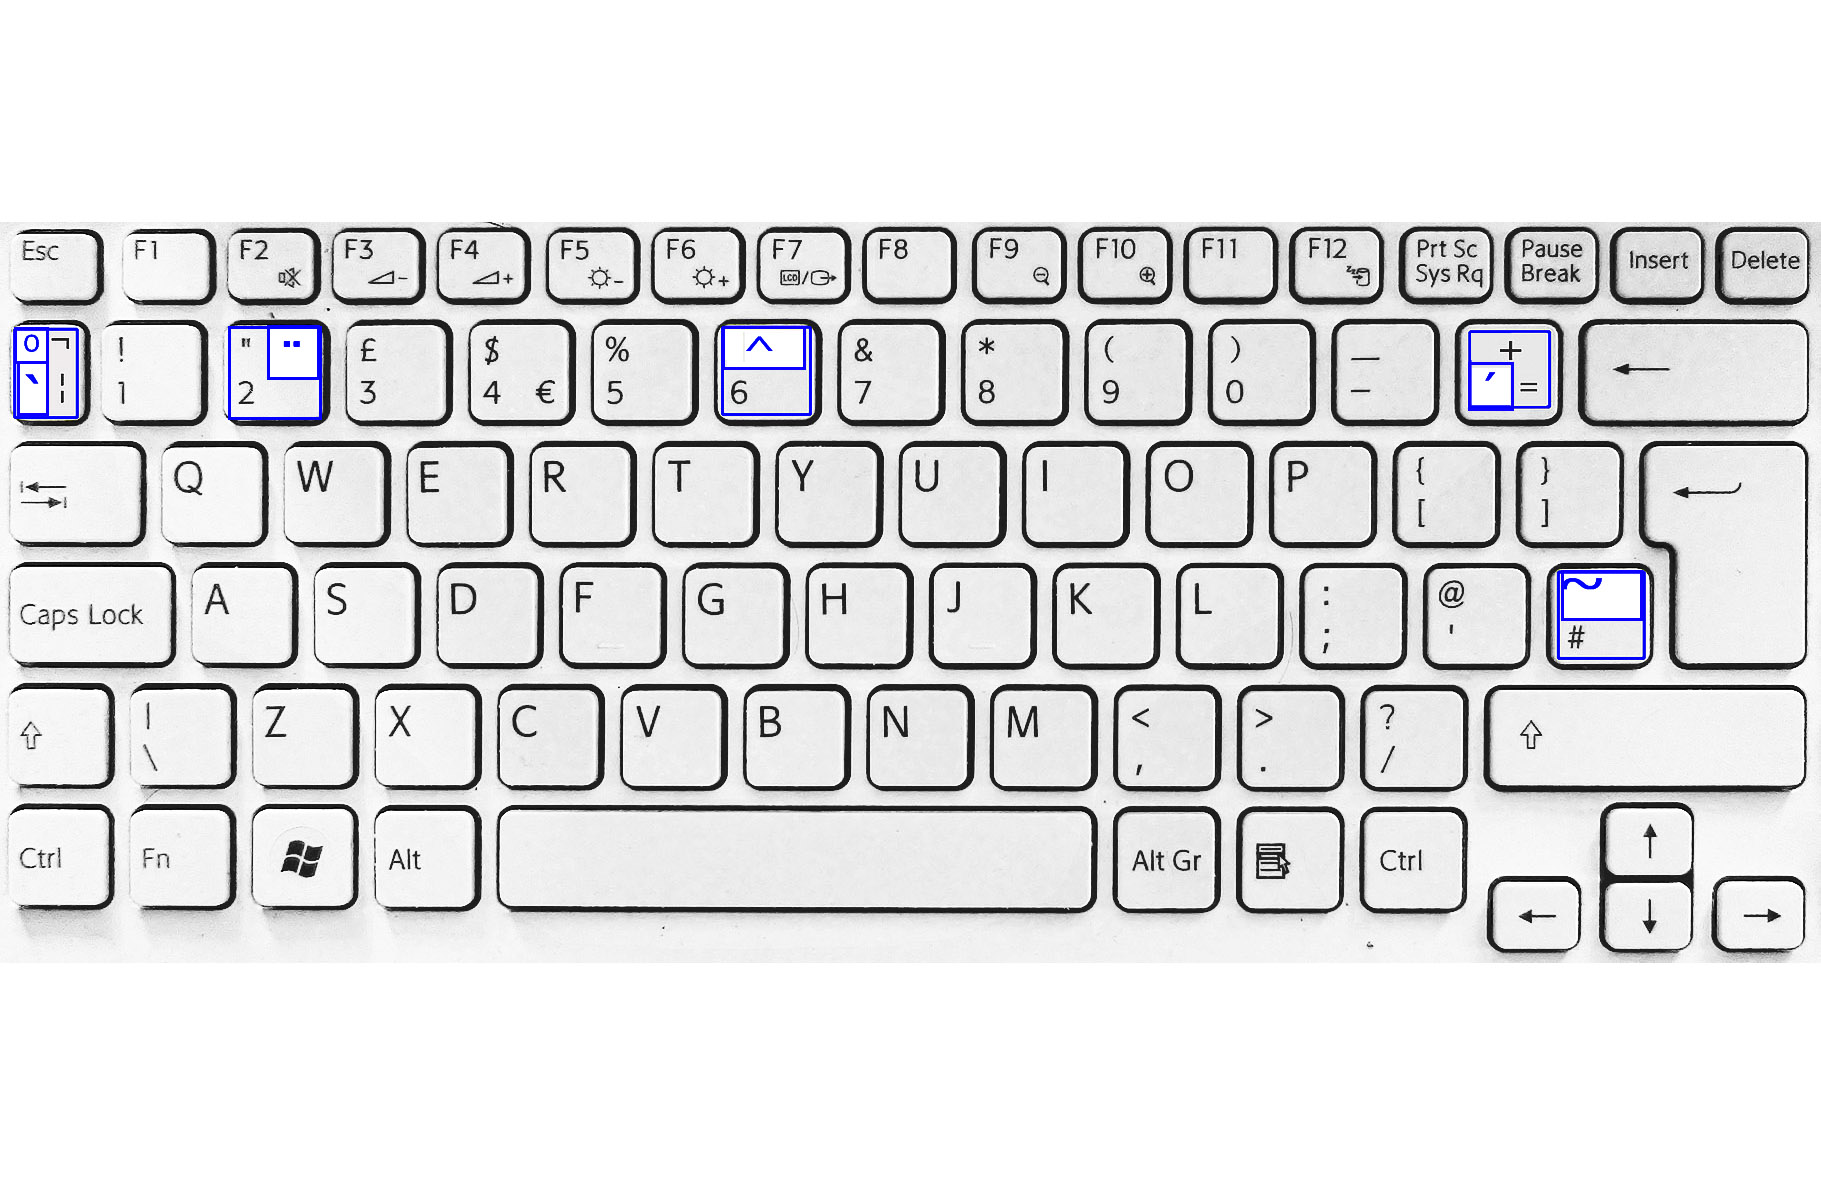 Taggs 2010 Multilingual Keyboard